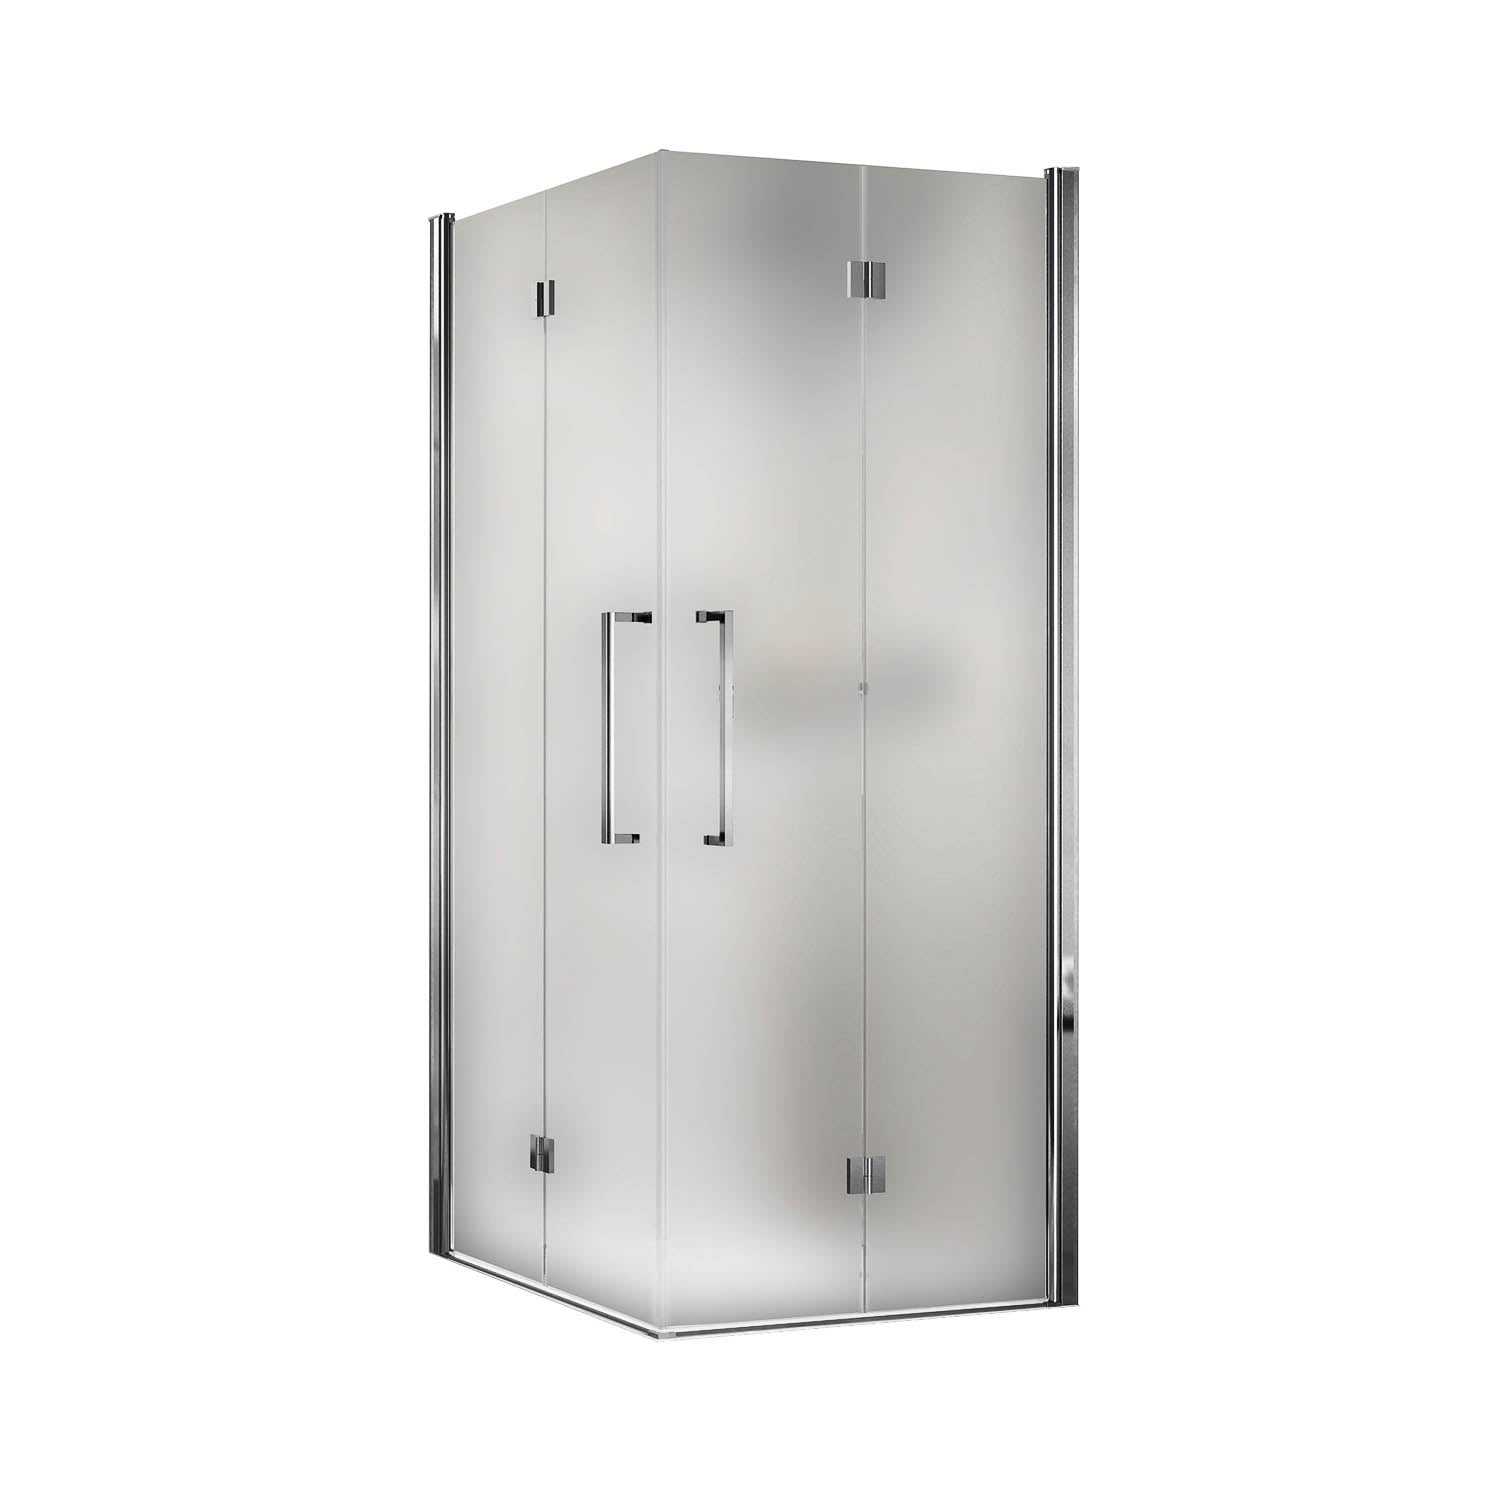 790-810mm Bliss Bi-folding Screen Frosted Glass with a chrome finish on a white background